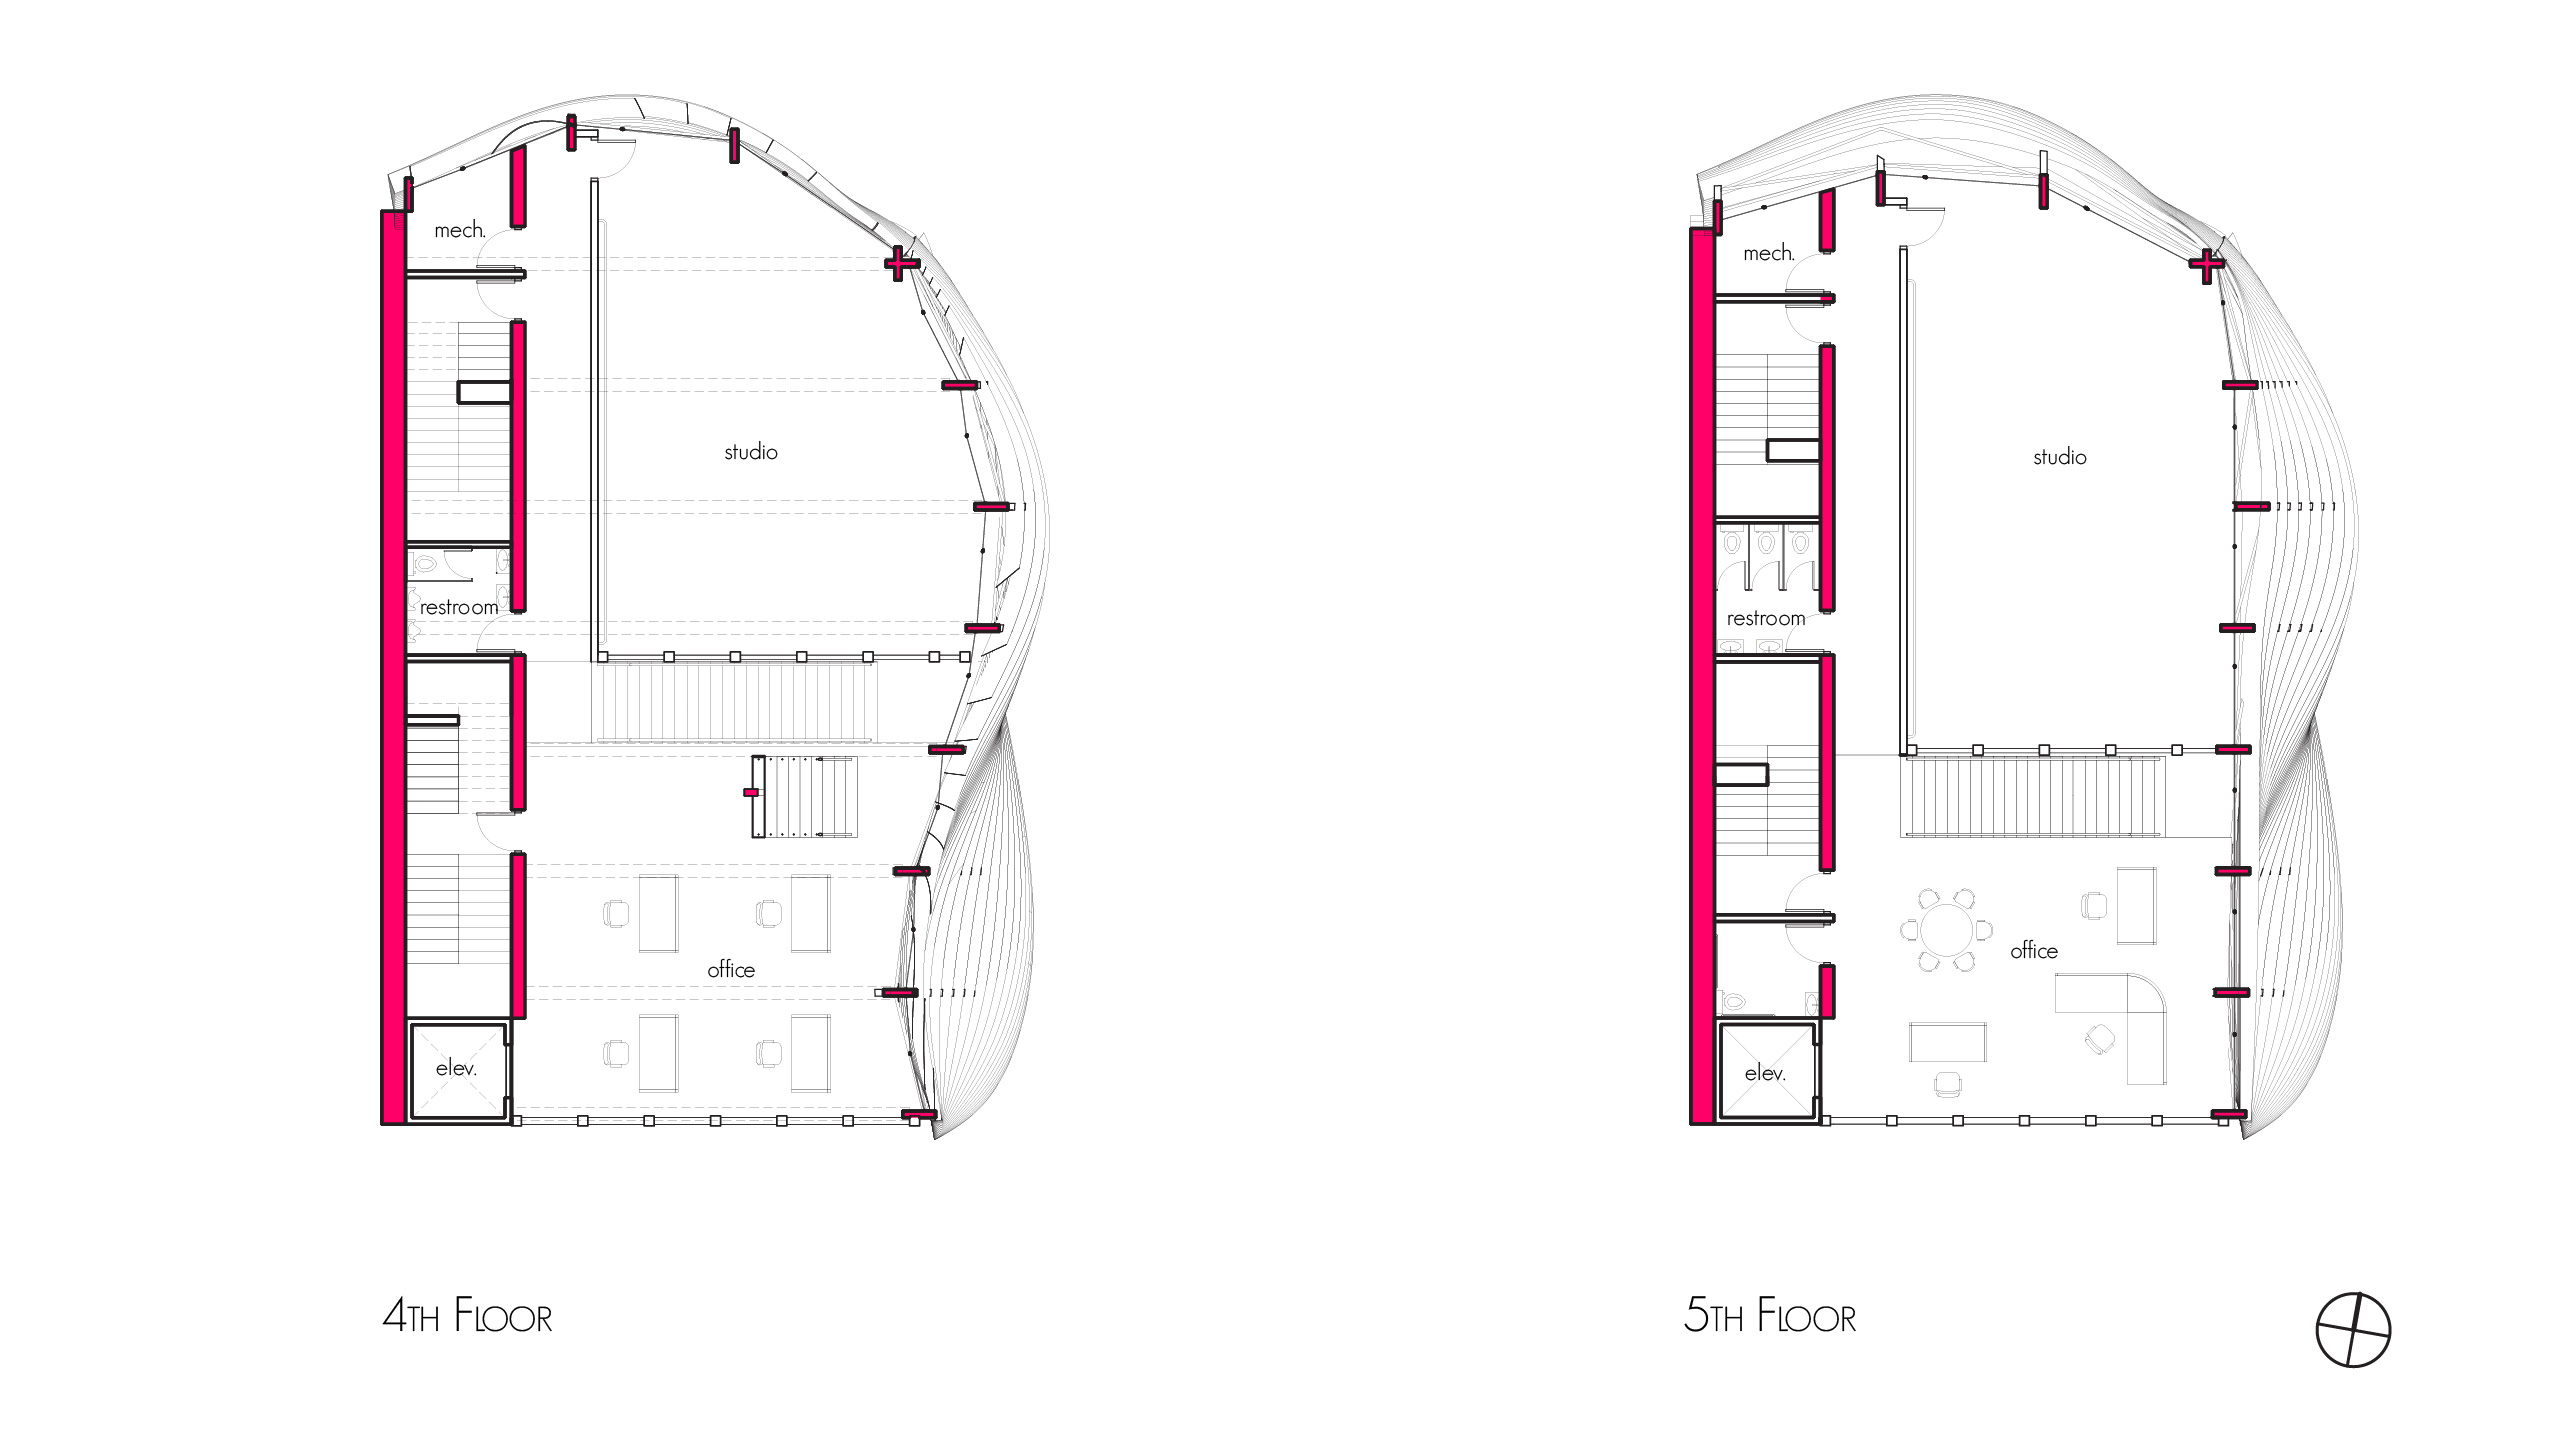 Plans - Fourth Floor and Fifth Floor